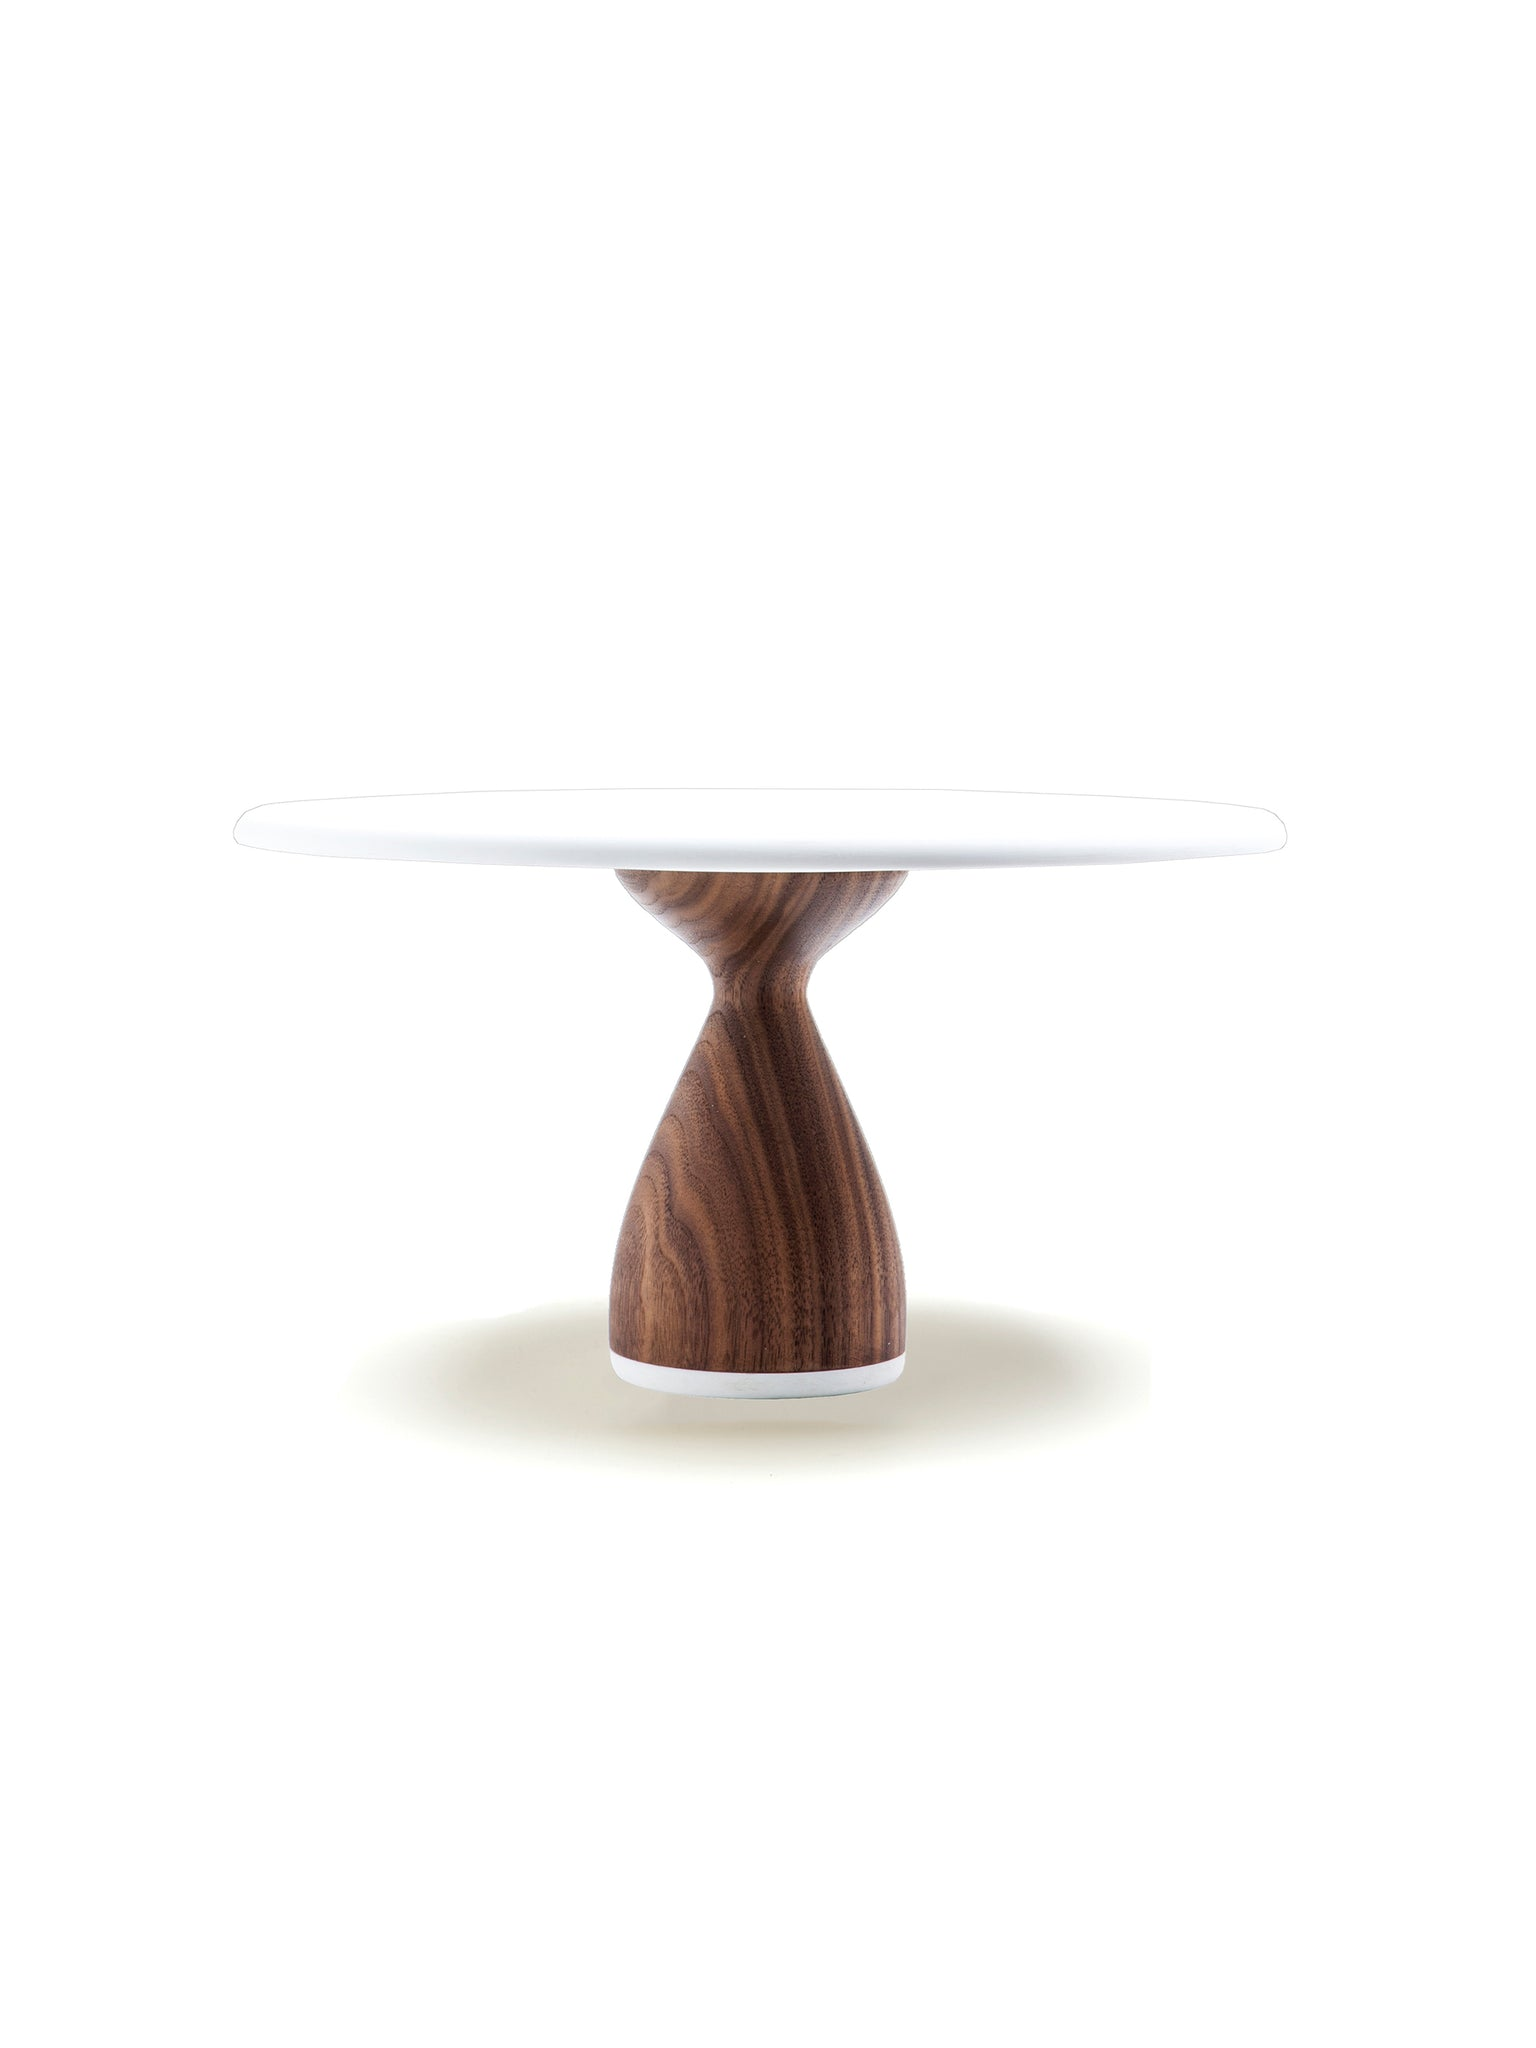 "American Heirloom Hardwood Walnut Thick Base Cake Stand 10"" Weston Table"